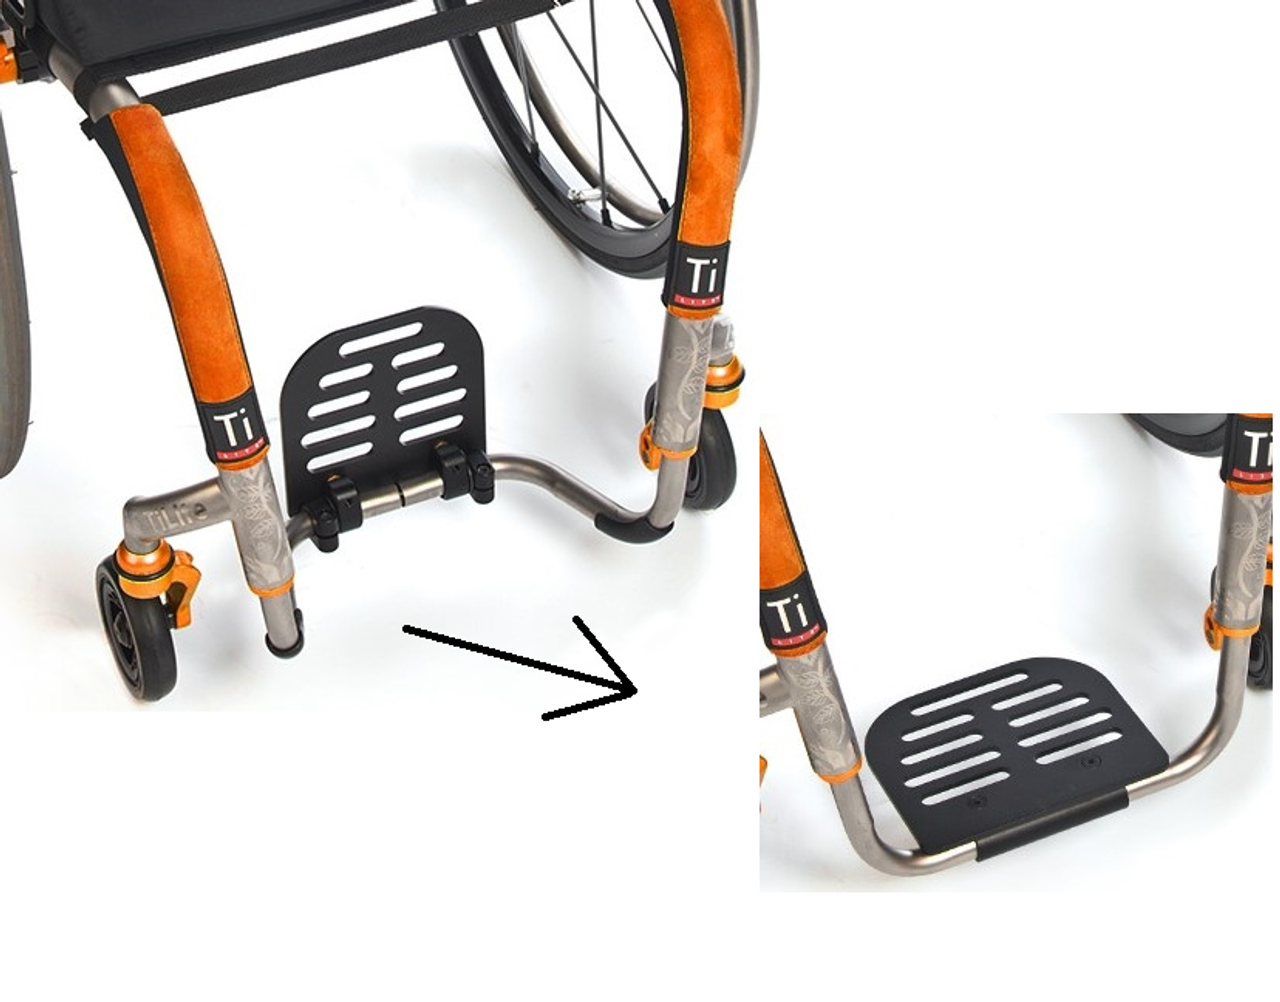 TiLite flip up foot plate to Angle Adjustable Aluminum foot plate conversion Kit ($169)